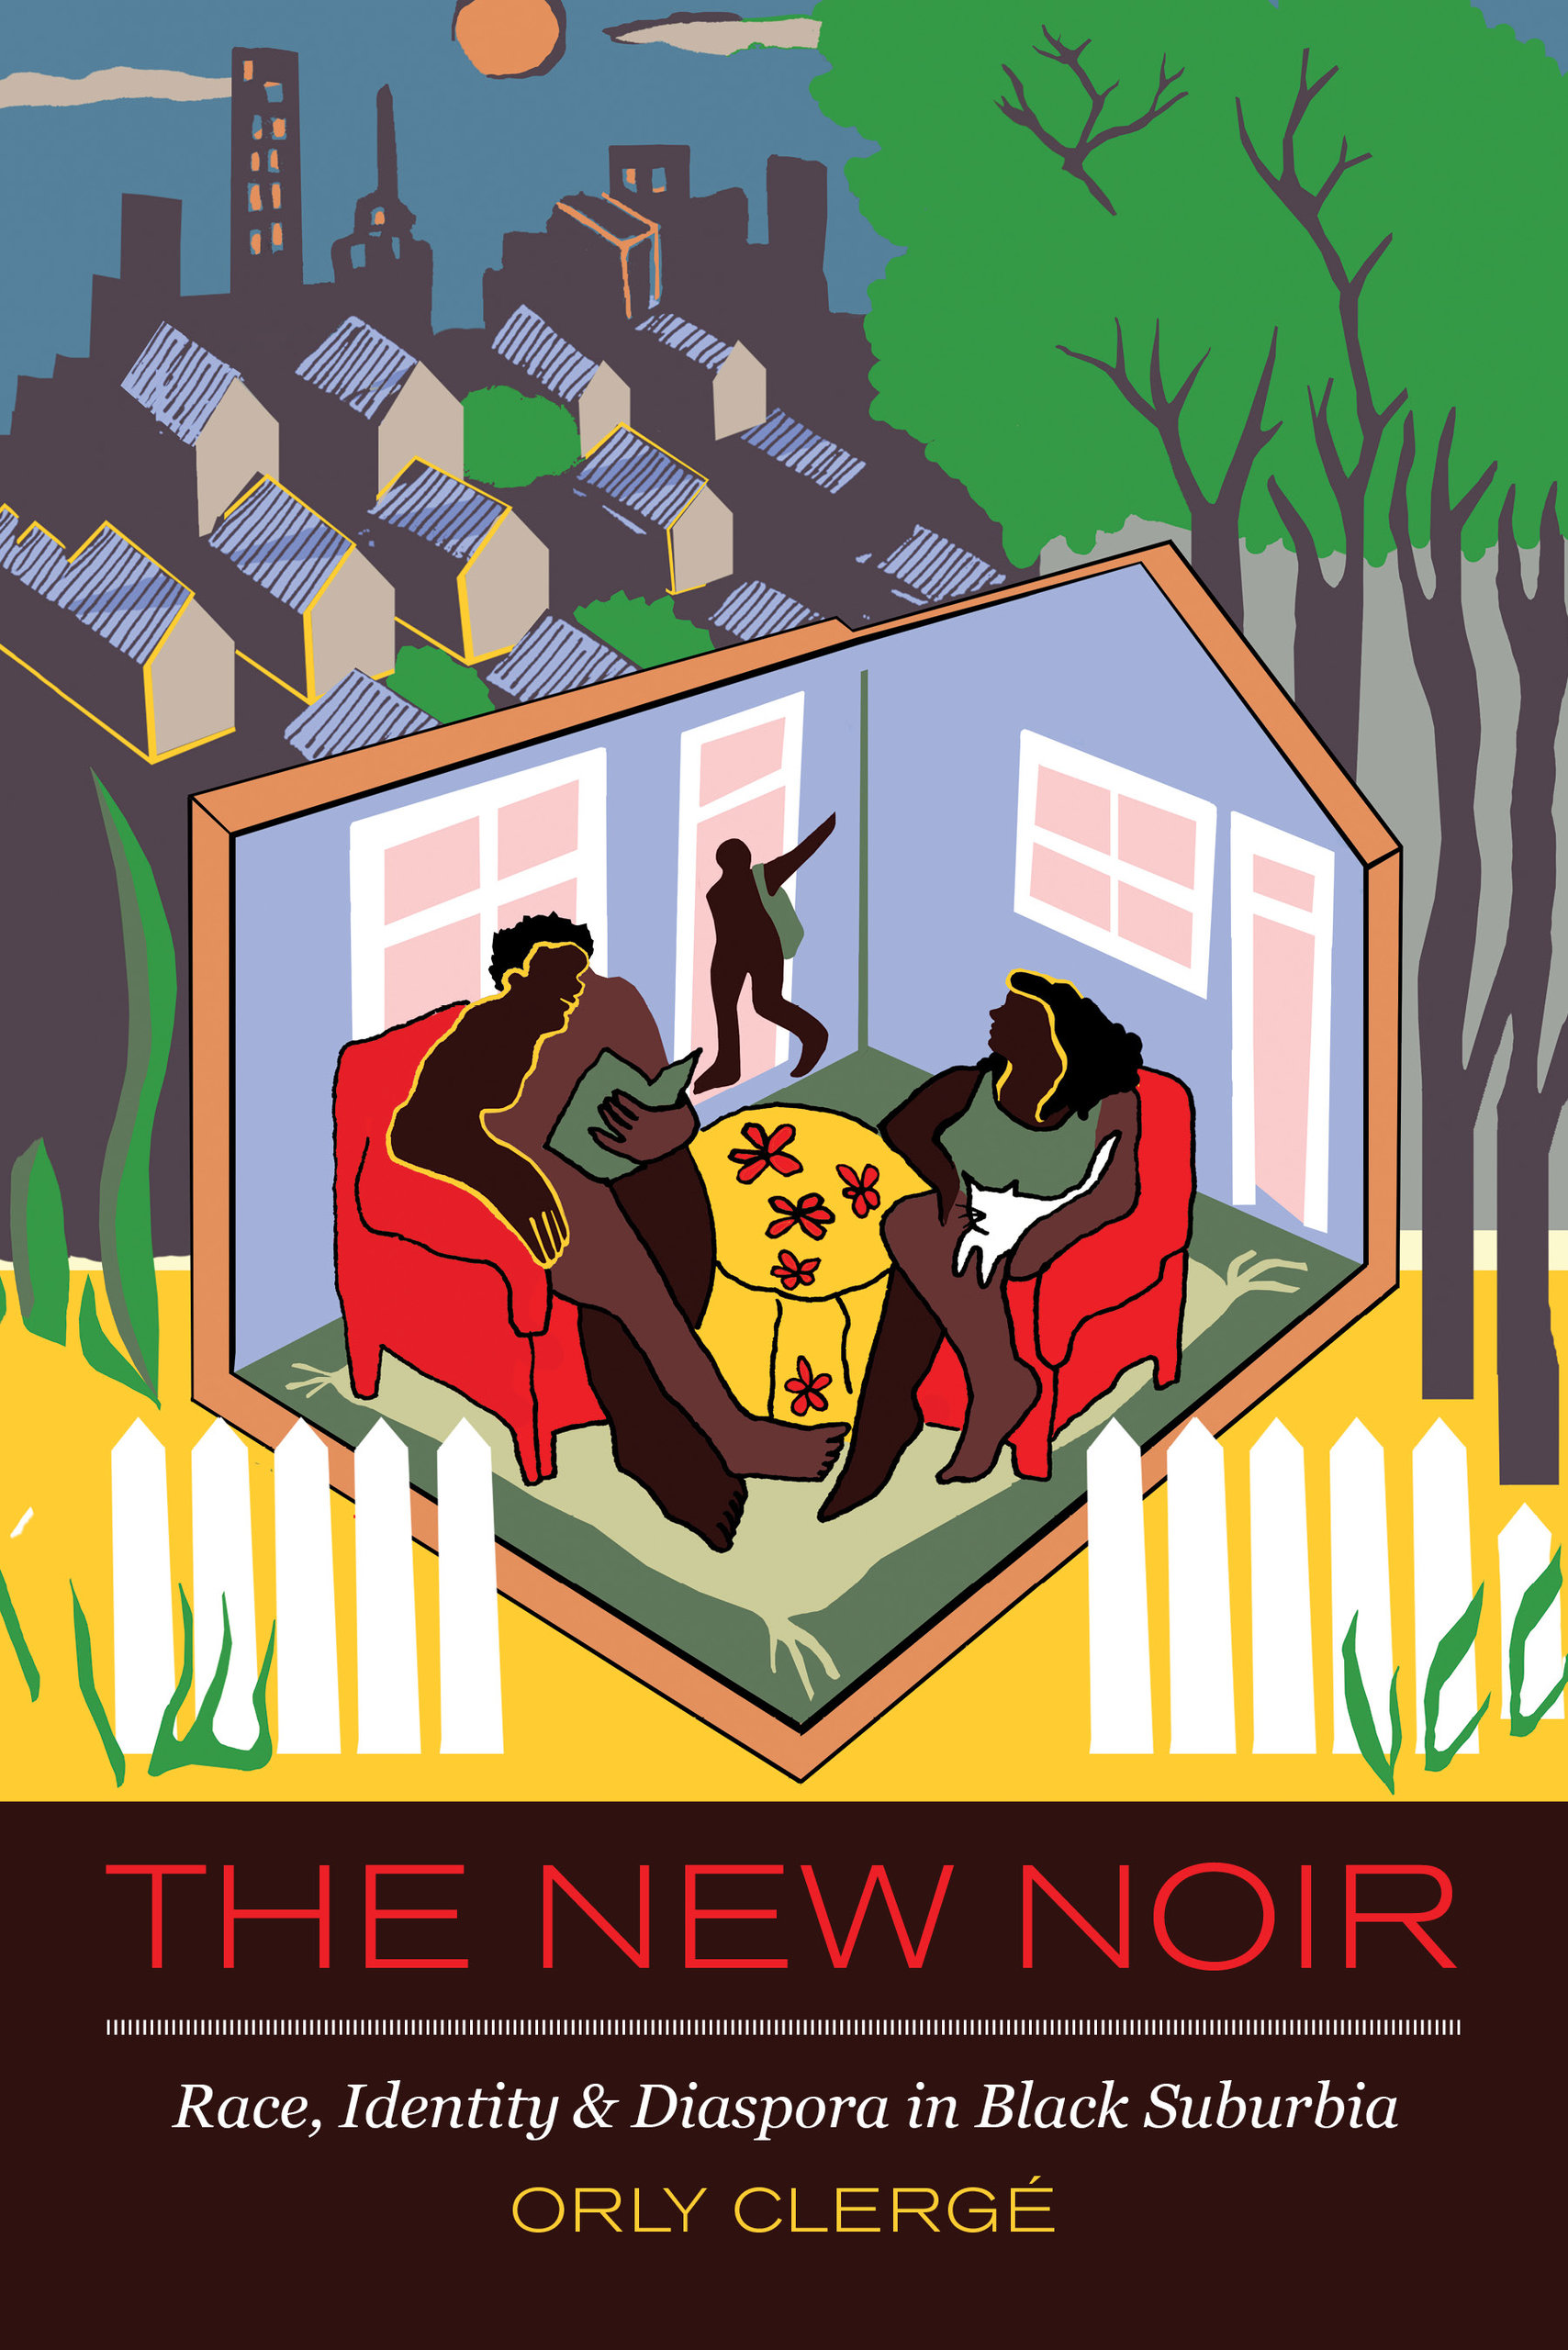 Cover of book, the New Noir, with illustration of African American family in living room, suburbs and city scape behind their home